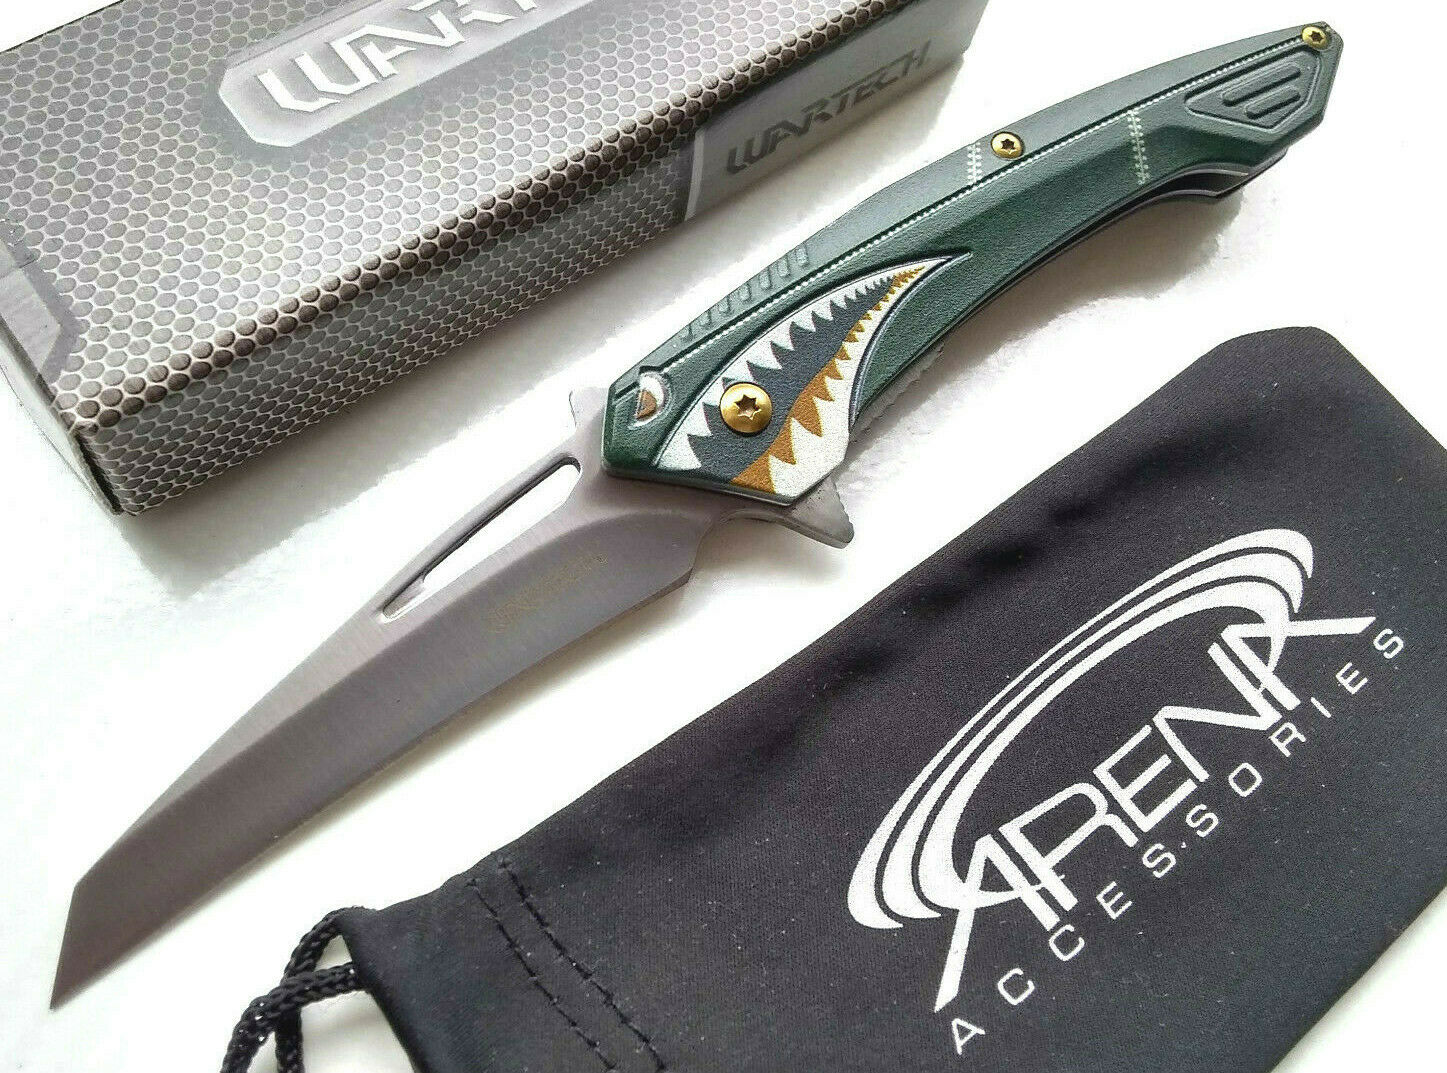 Wartech Green Flying Tiger Air Force Shark Spring Assisted Pocket Knife Wharncliffe Flipper Blade Tip Up Carry EDC